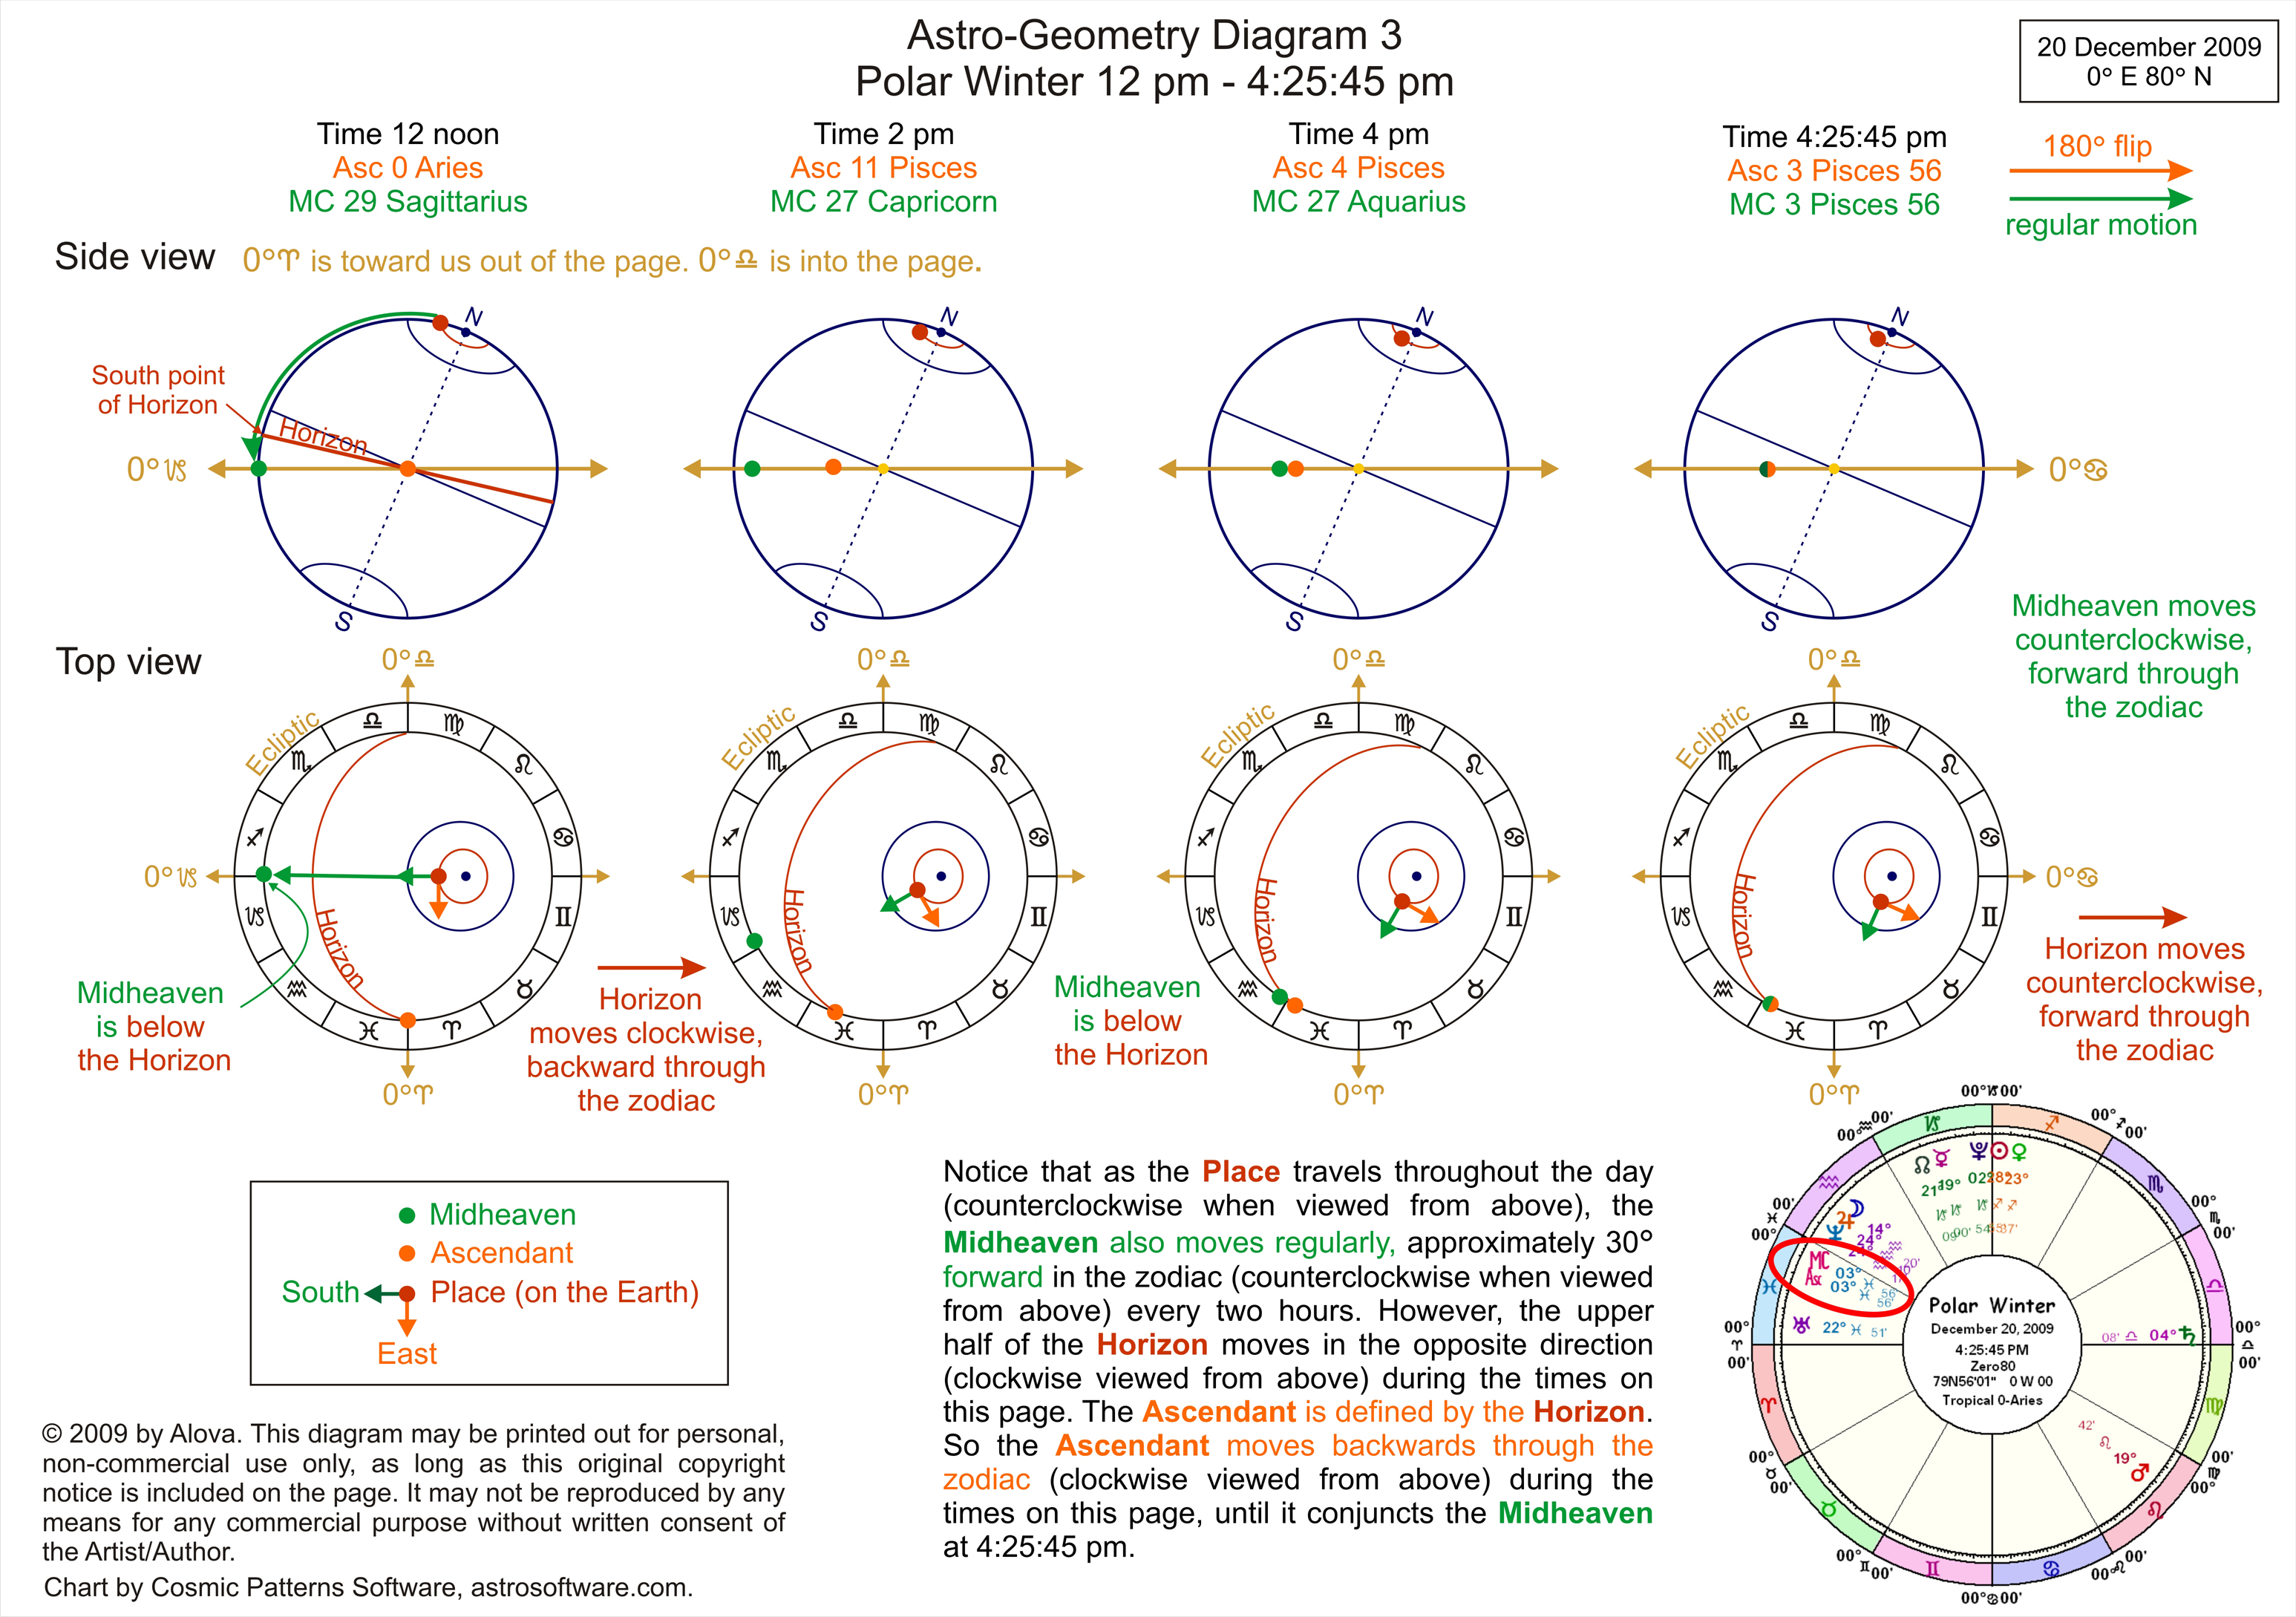 Astro geometry astrology article by alova click for a printable version of diagram 3 then save nvjuhfo Gallery